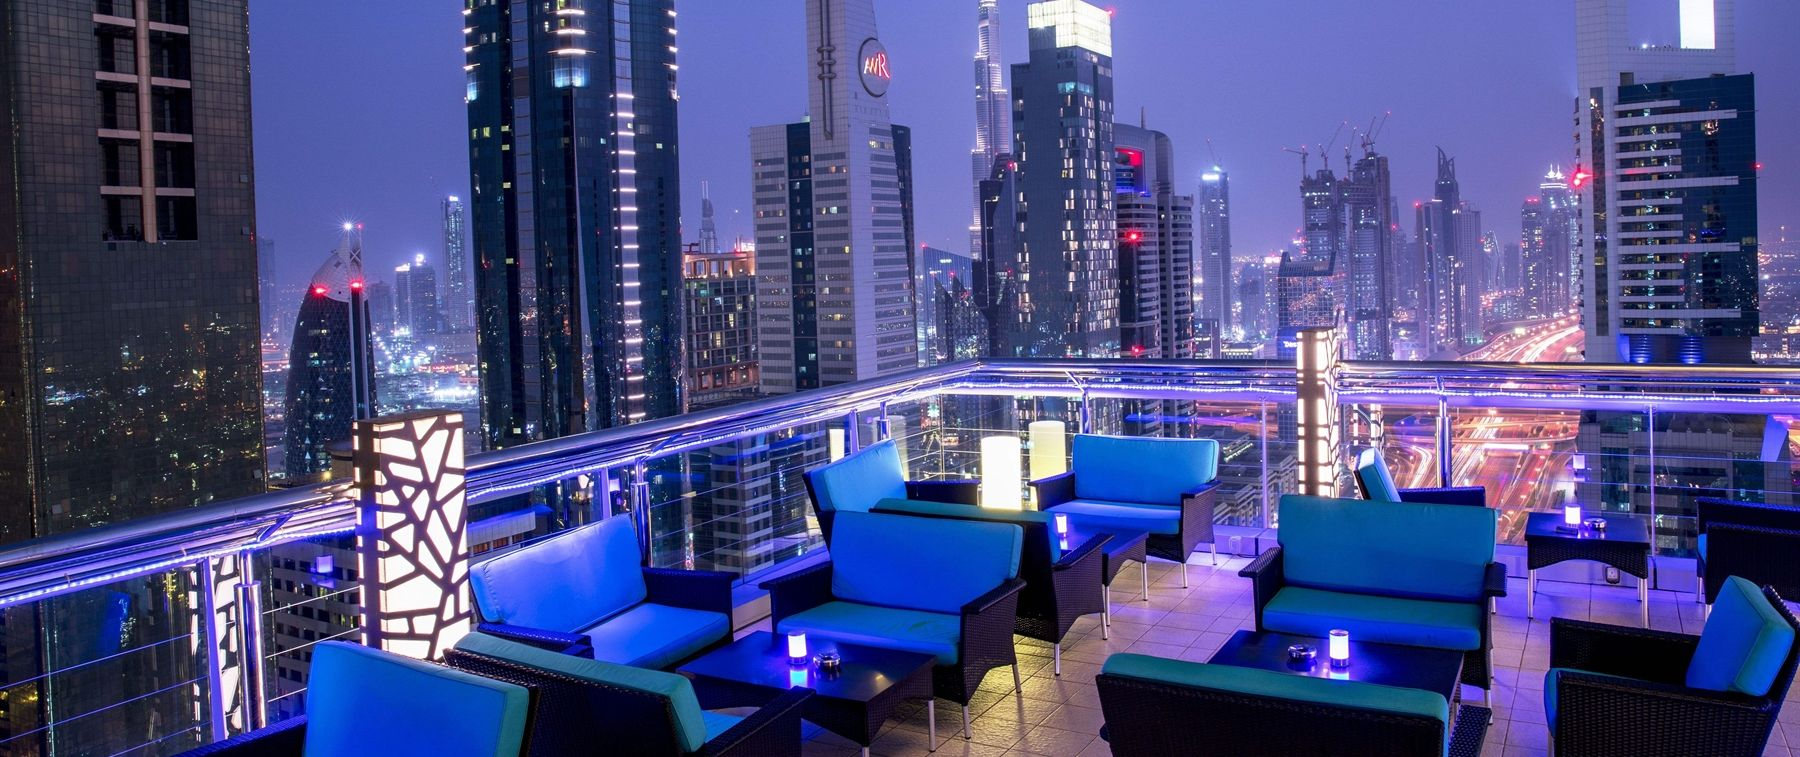 Rooftop Lounge And Bar In Dubai Level 43 Sky Lounge Rooftop